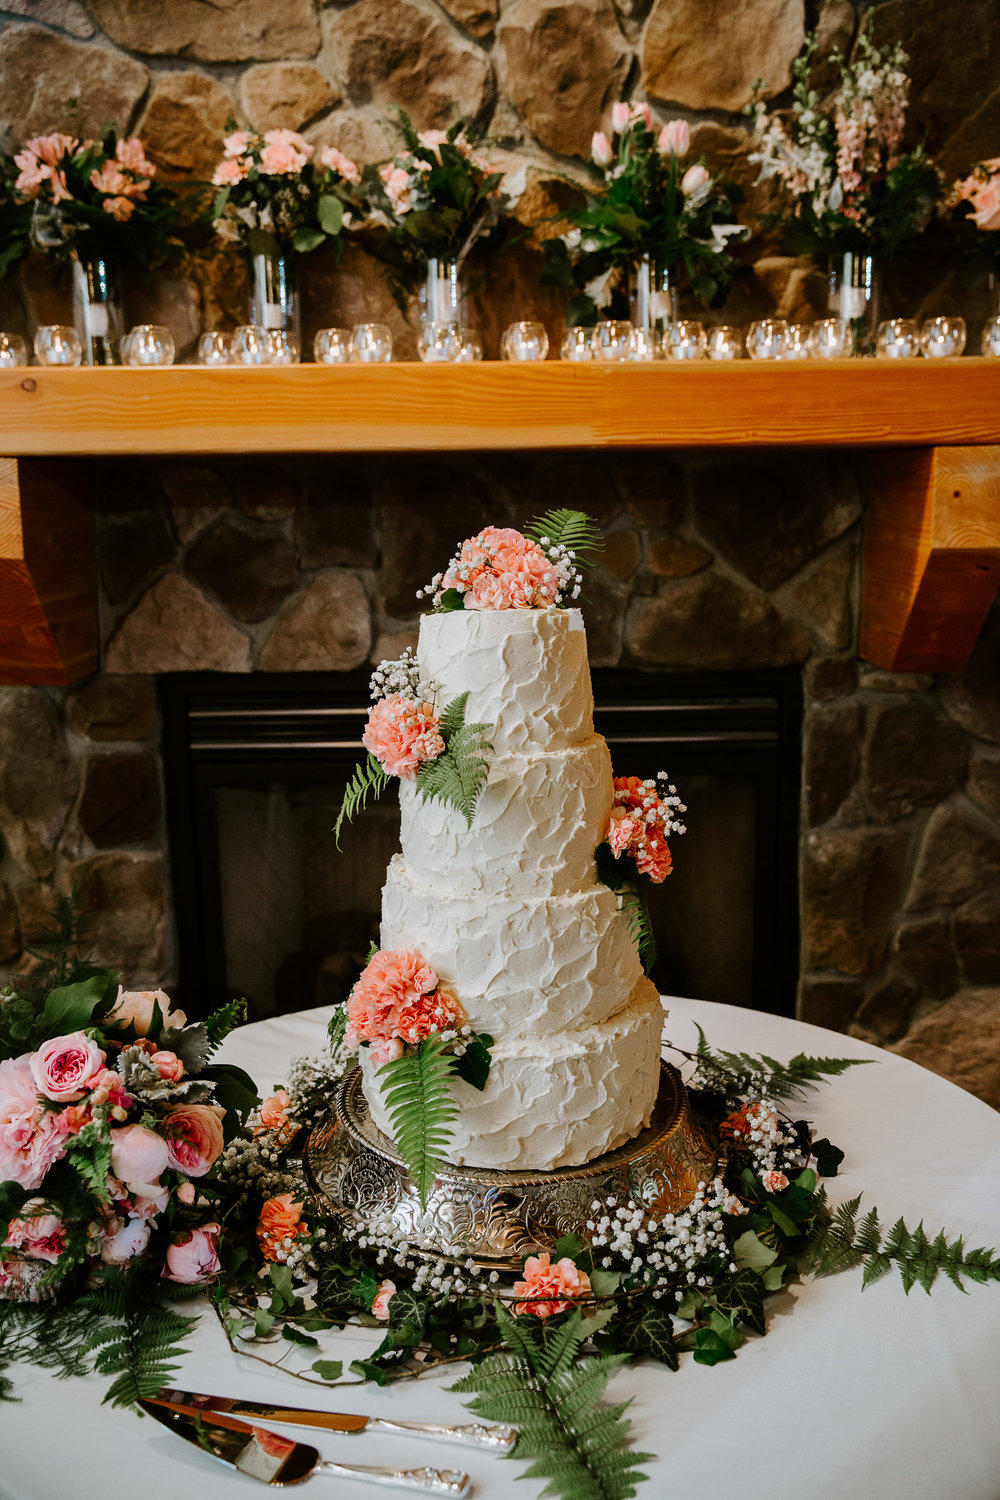 House Mountain Inn - Weddings - Lexington - Virginia - Best Wedding Photographer - Pat Cori Photography-64.jpg